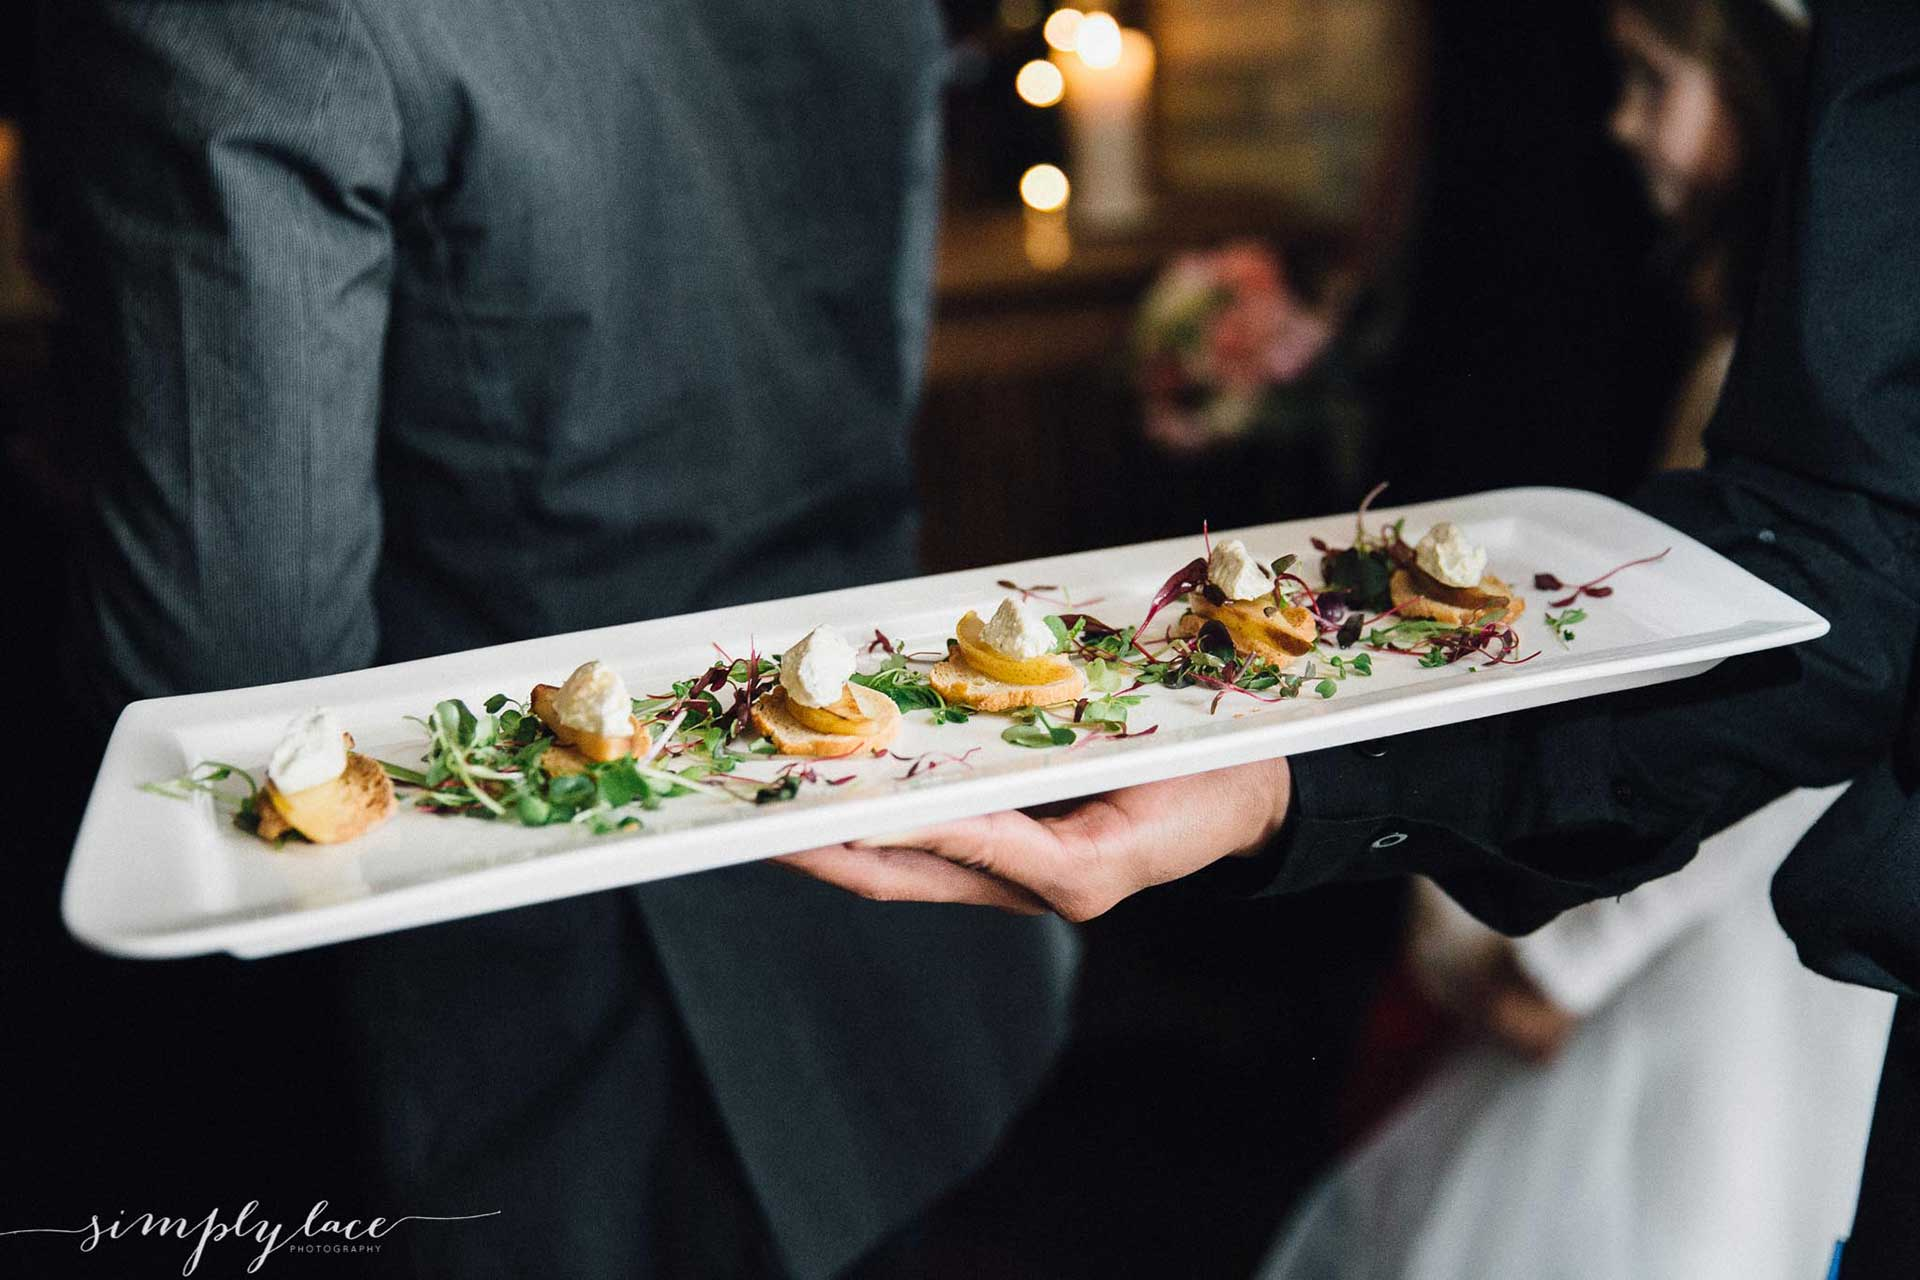 Unique Event Venues Toronto - Catering Passed Hors D'Oeuvres